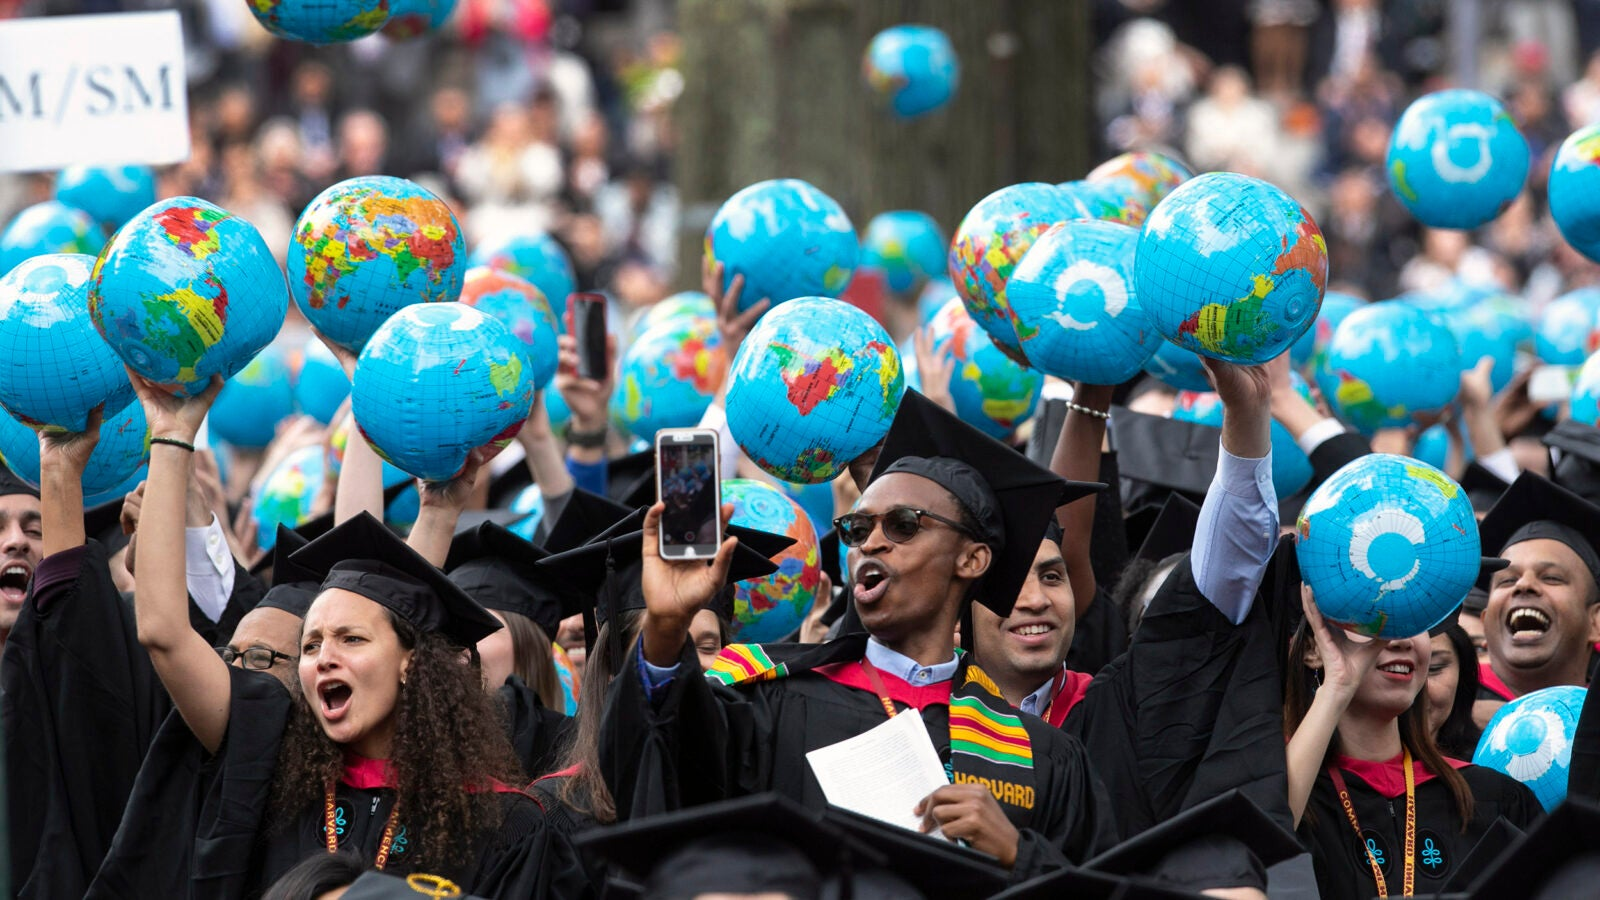 Kennedy School of Government graduates wave inflatable globes.